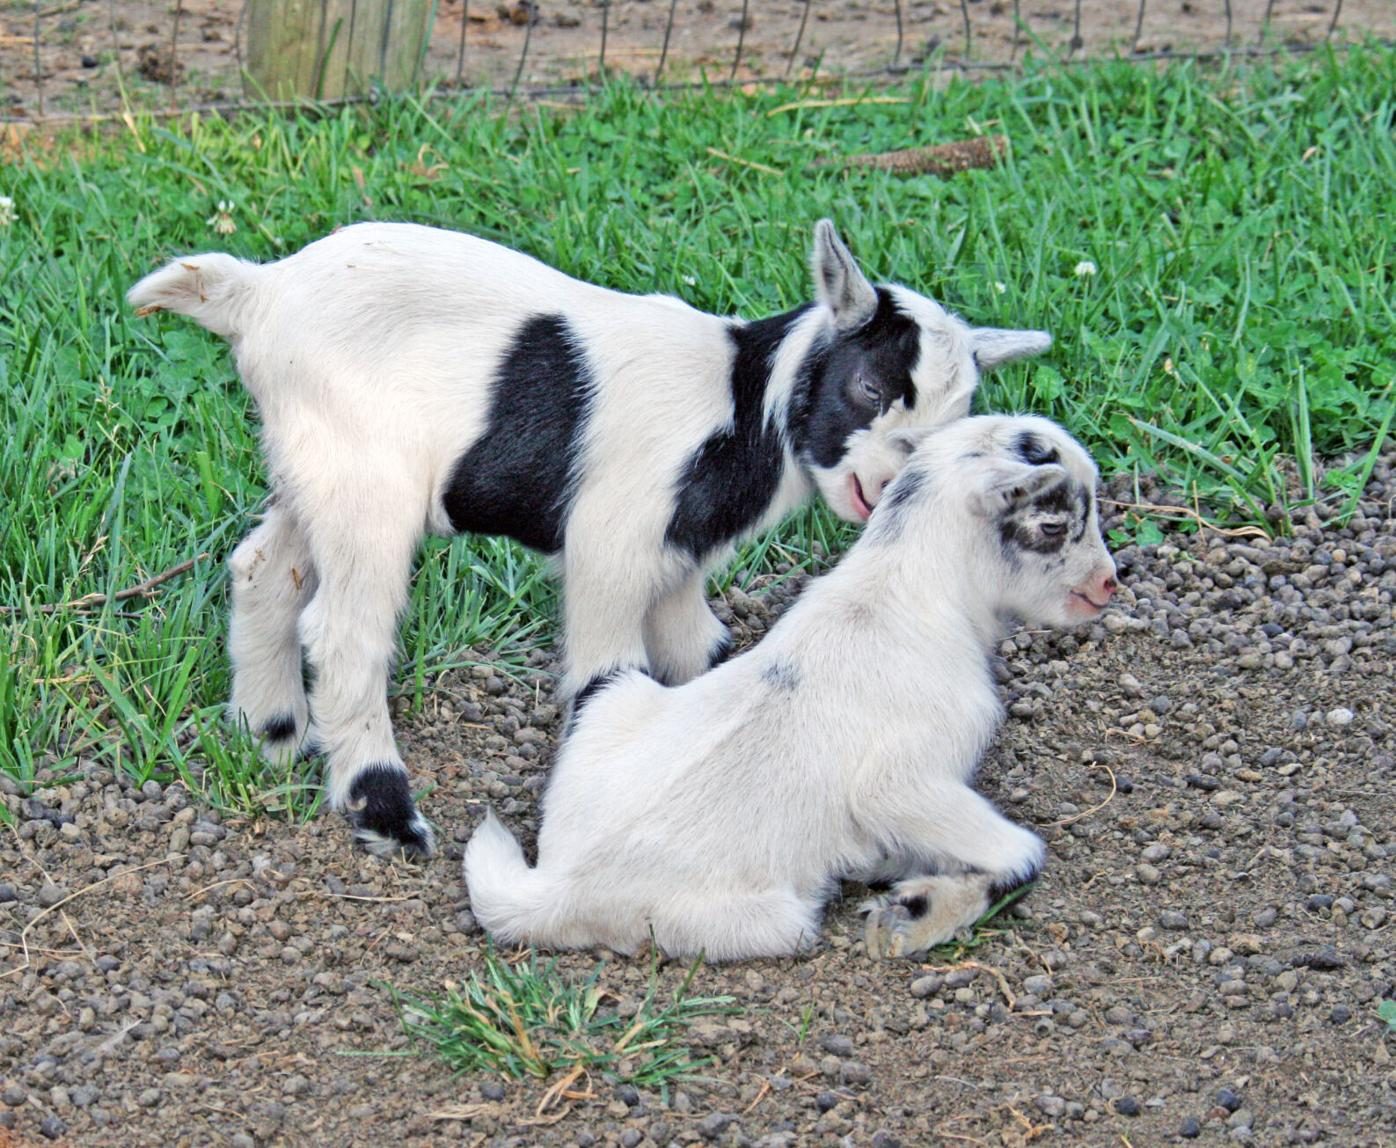 Baby Goats.